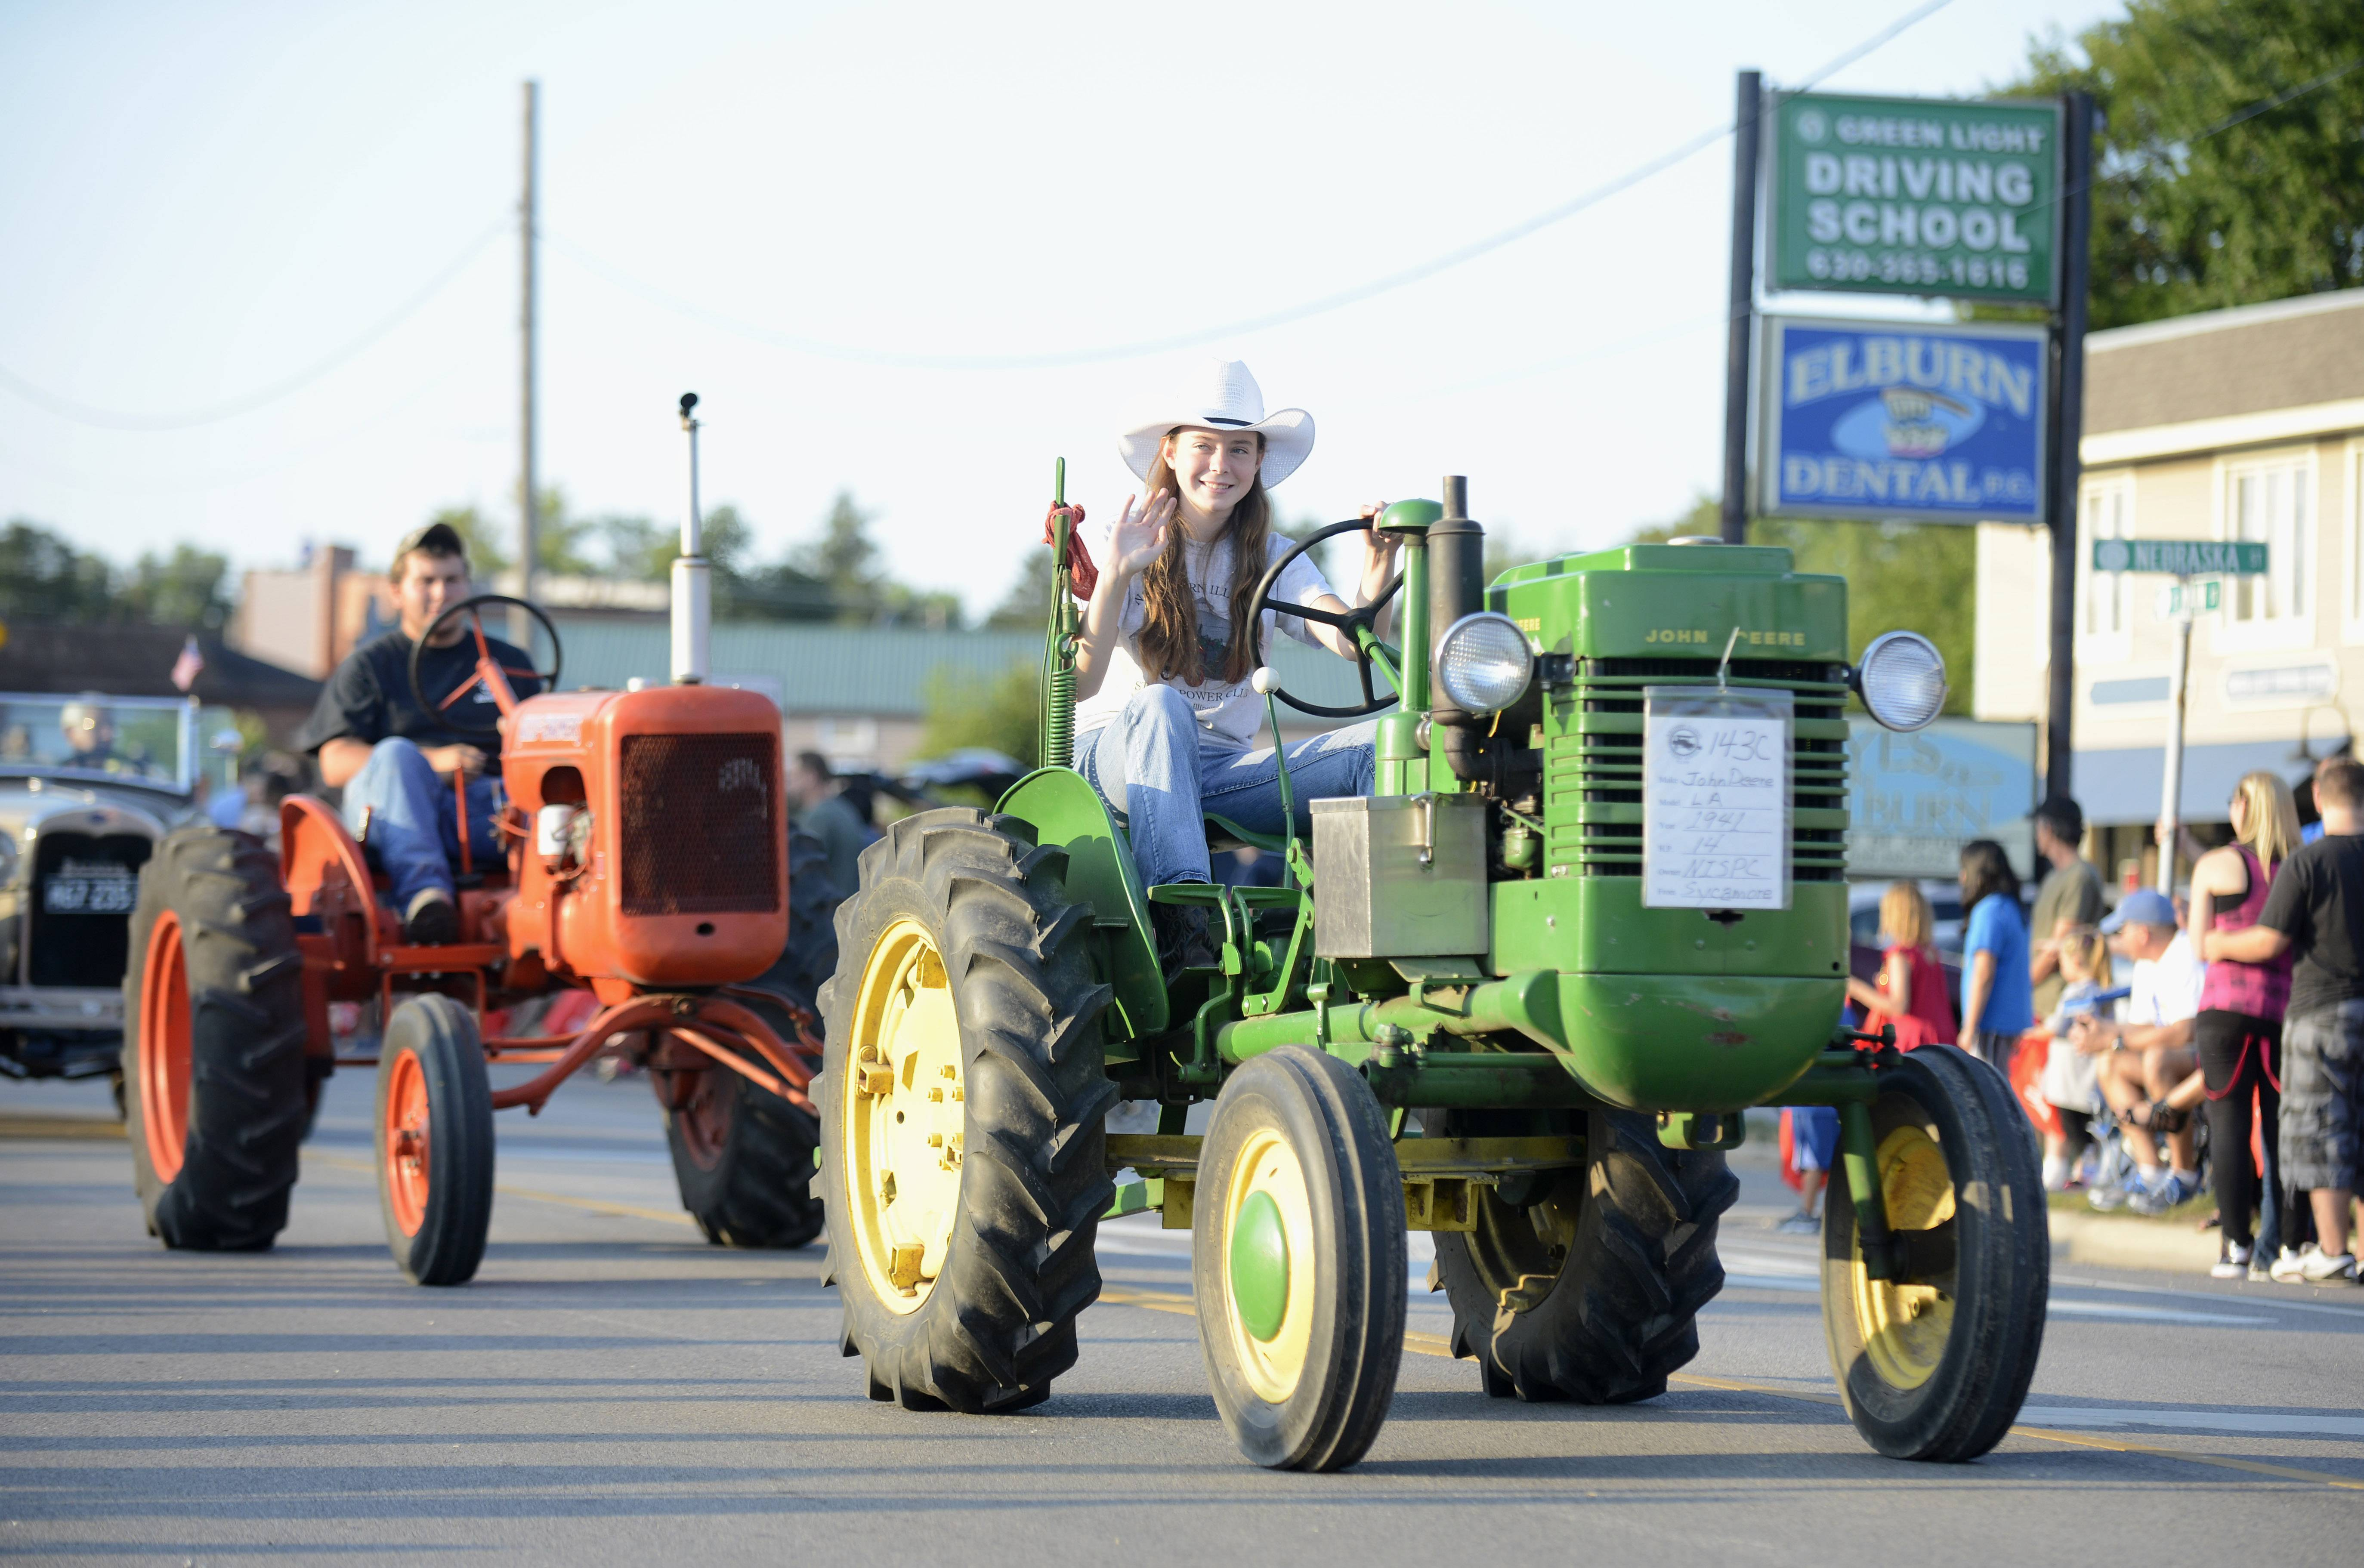 Jennifer Stevens, 14, of Sycamore rides a 1941 John Deere tractor in the Elburn Days parade. Stevens said she has been driving tractors since she was three, when her father made one just for her size.